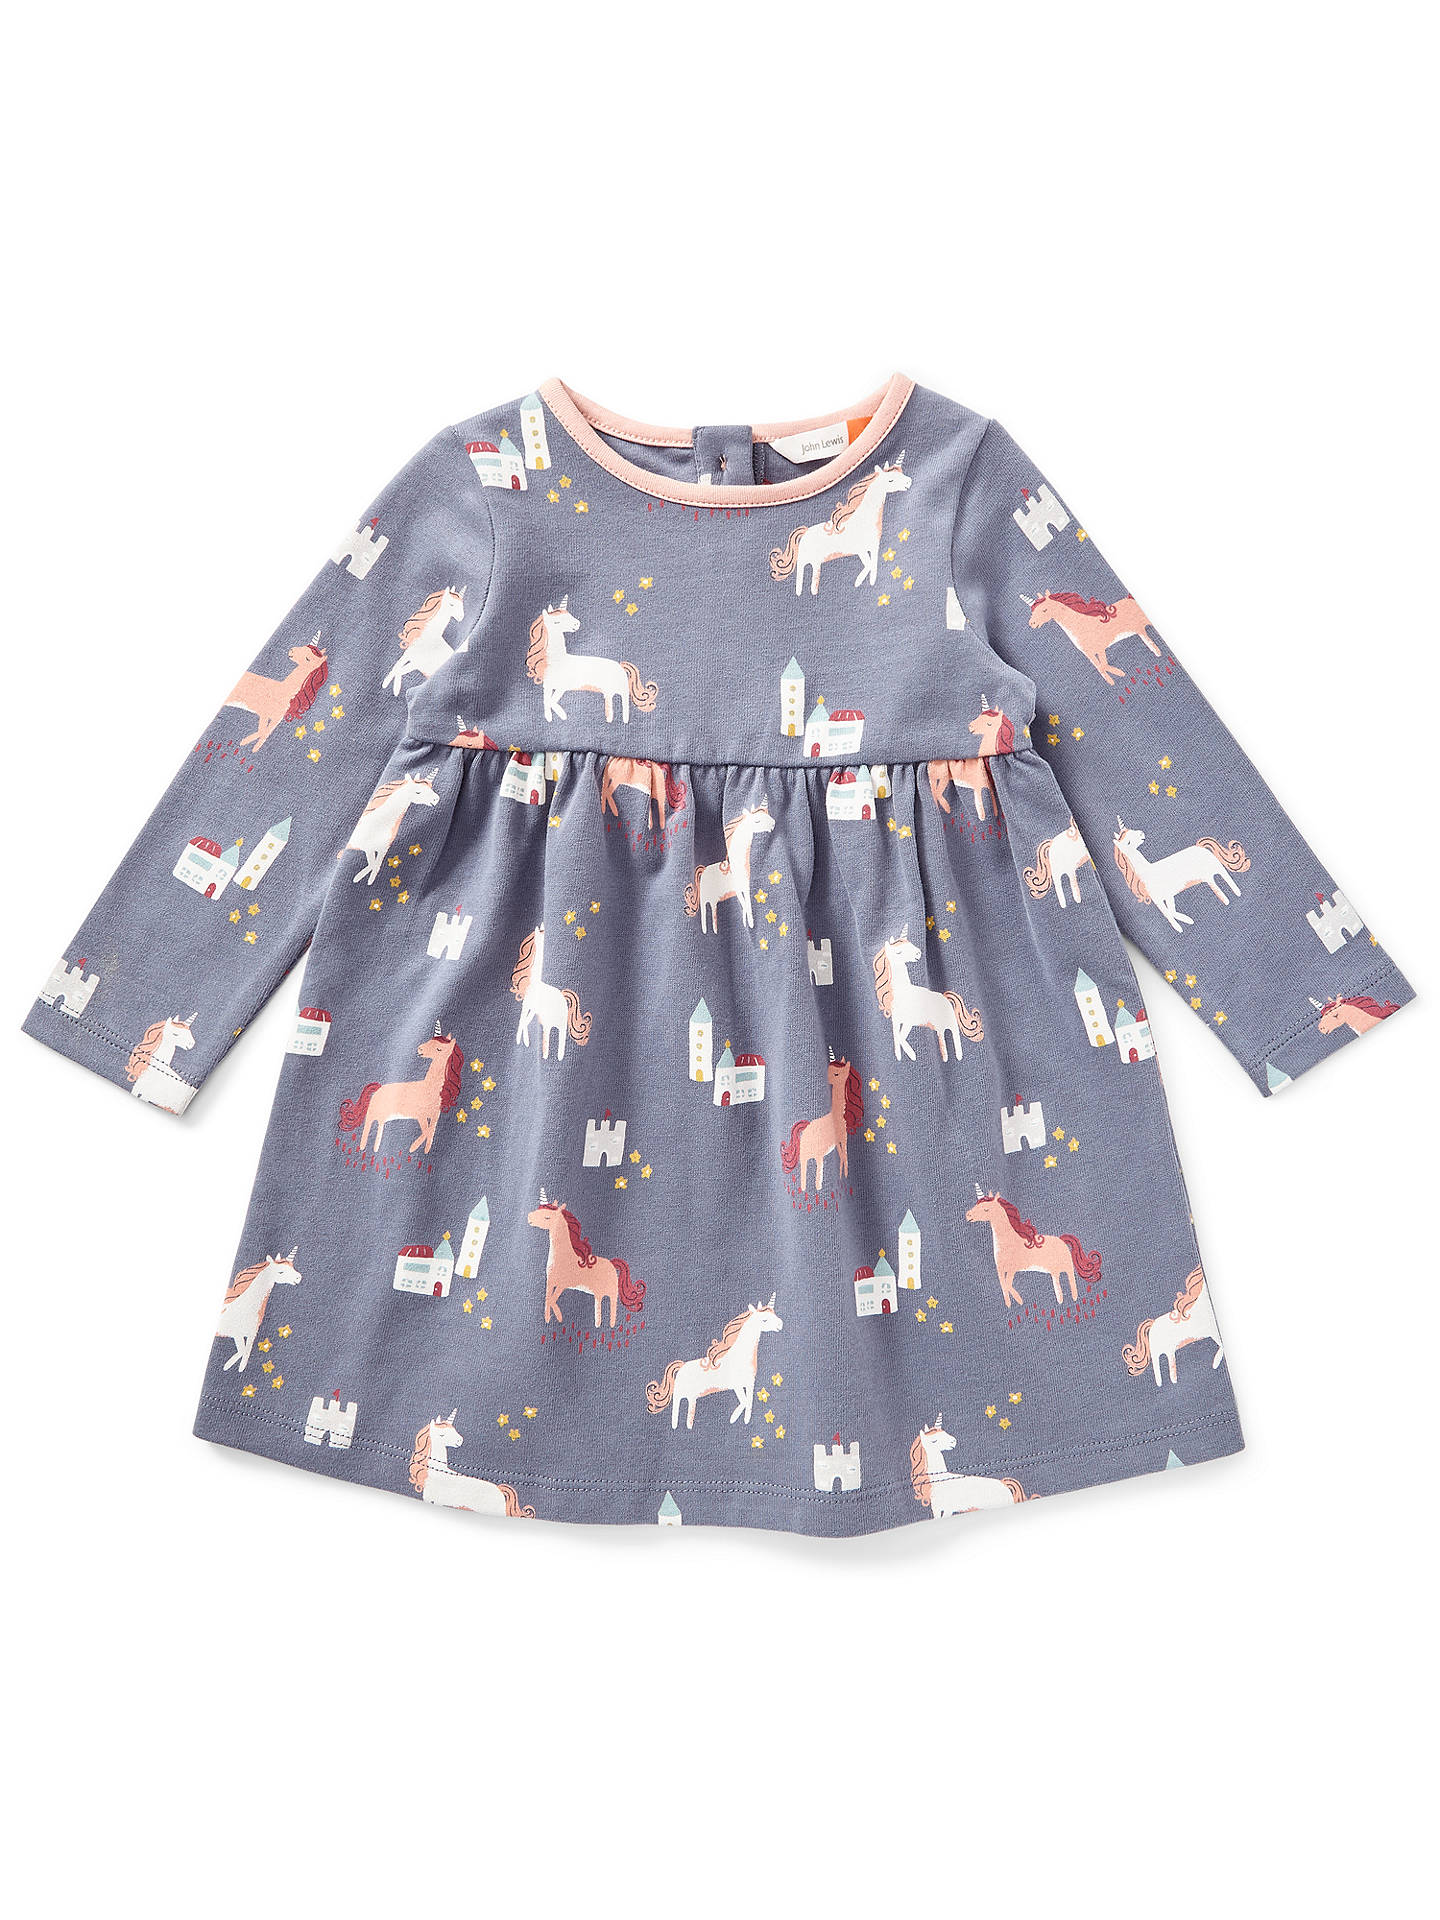 fbee79357 John Lewis   Partners Baby Unicorn Print Dress